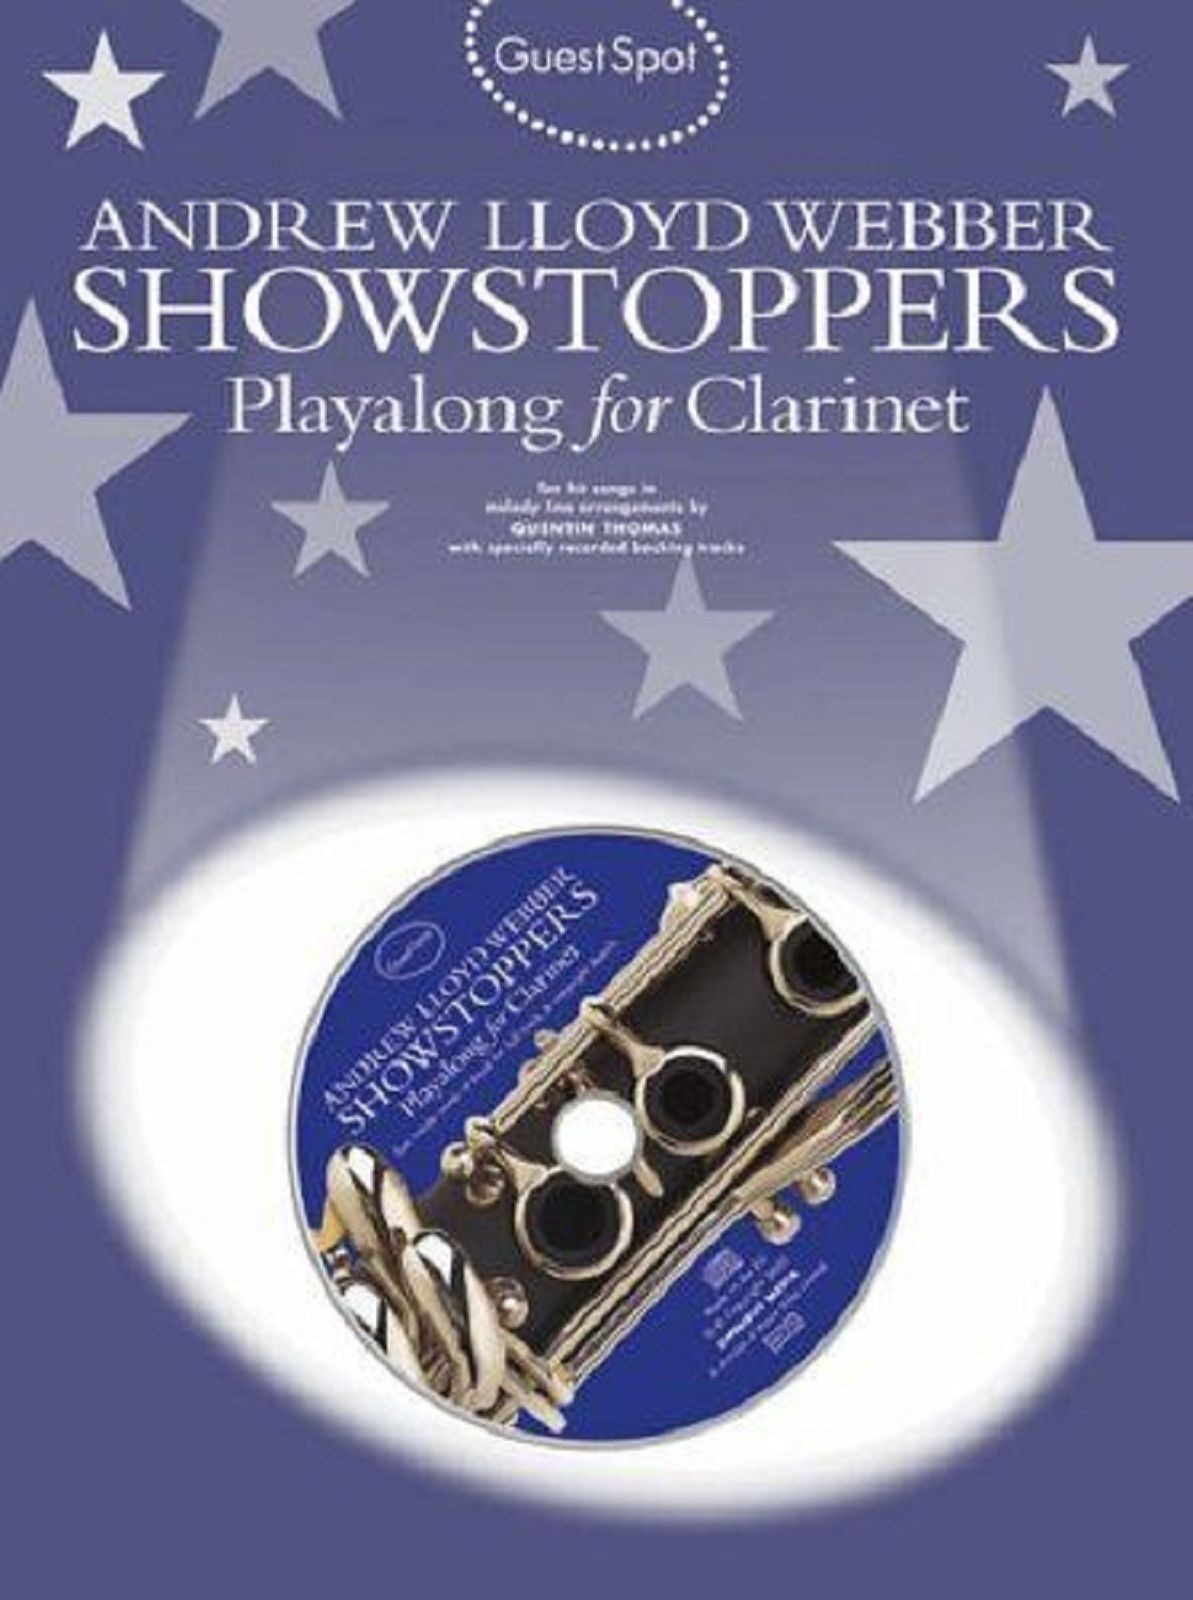 Guest Spot Andrew Lloyd Webber Showstoppers Stage Musicals Clarinet CD Book S132